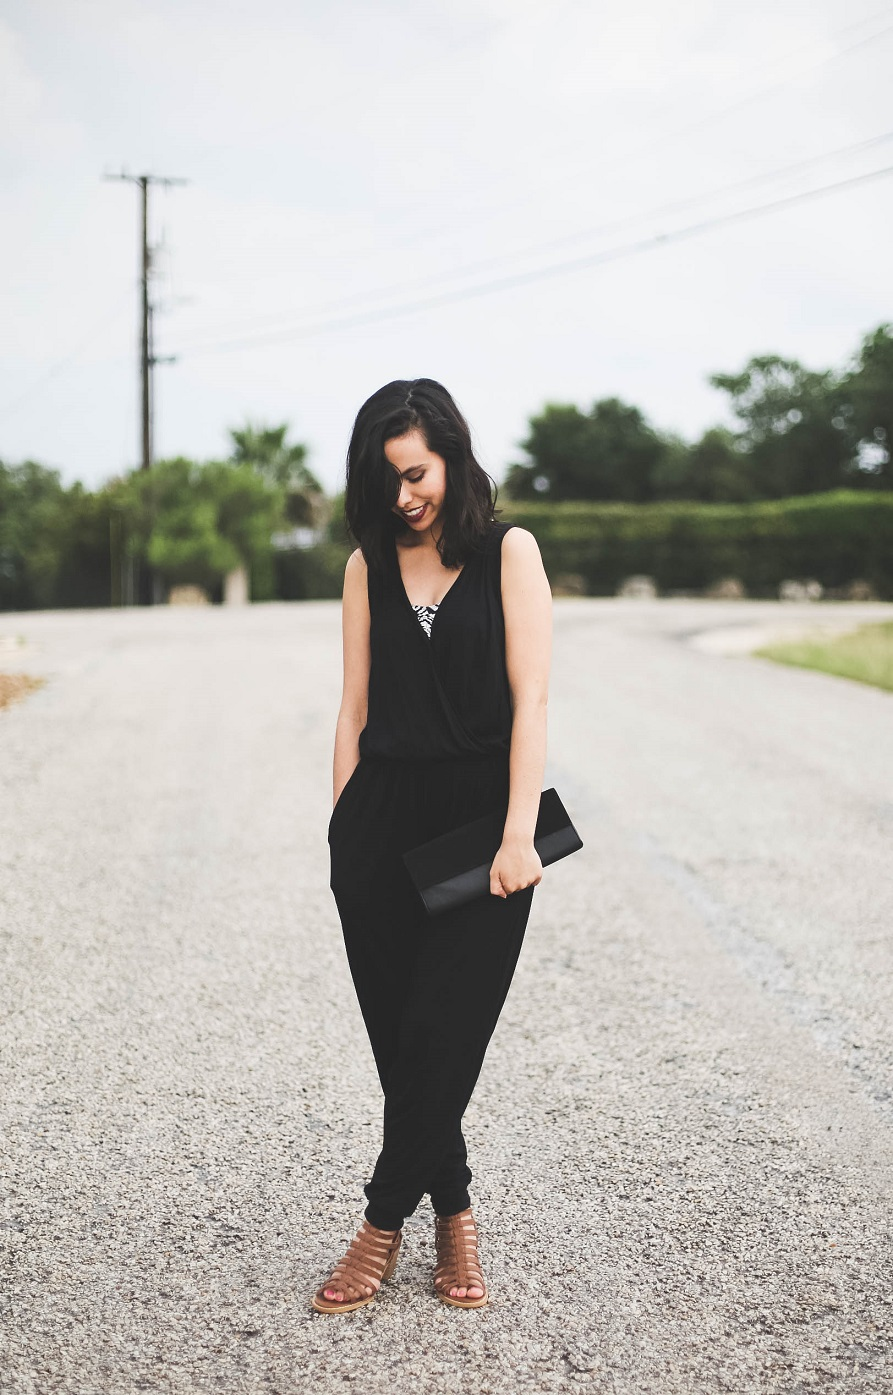 austin texas, austin fashion blog, austin fashion blogger, austin fashion, austin fashion blog, black jumpsuit, asos jumpsuit, petite jumpsuit, jumpsuits for petite girls